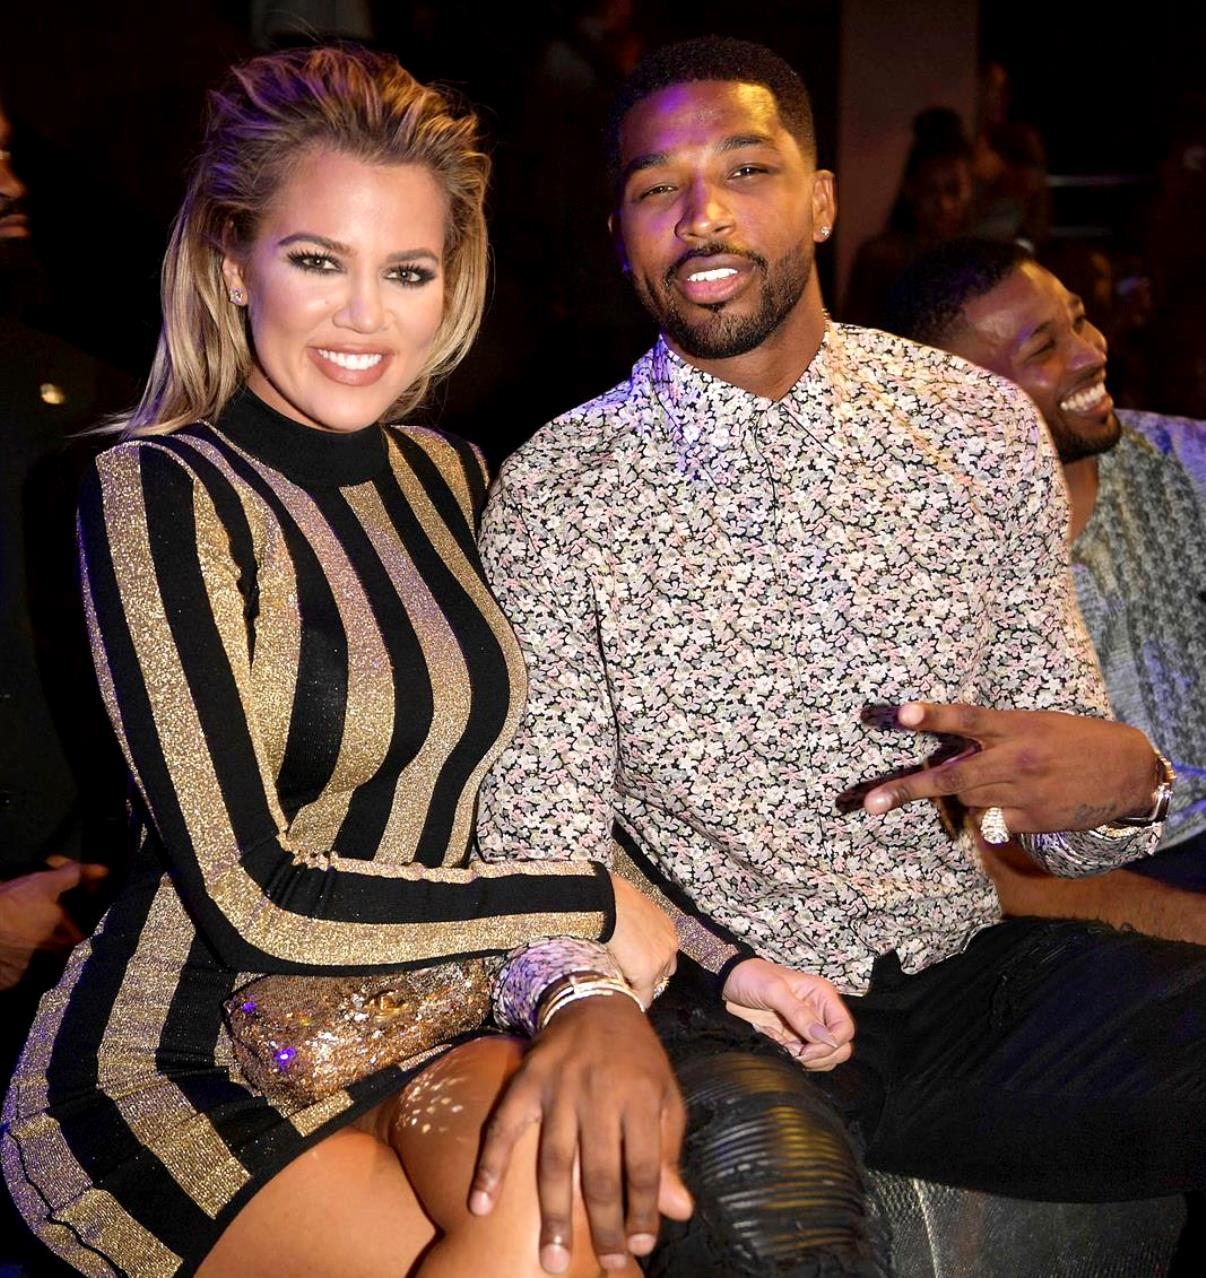 Khloe Kardashian and Tristan Thompson news